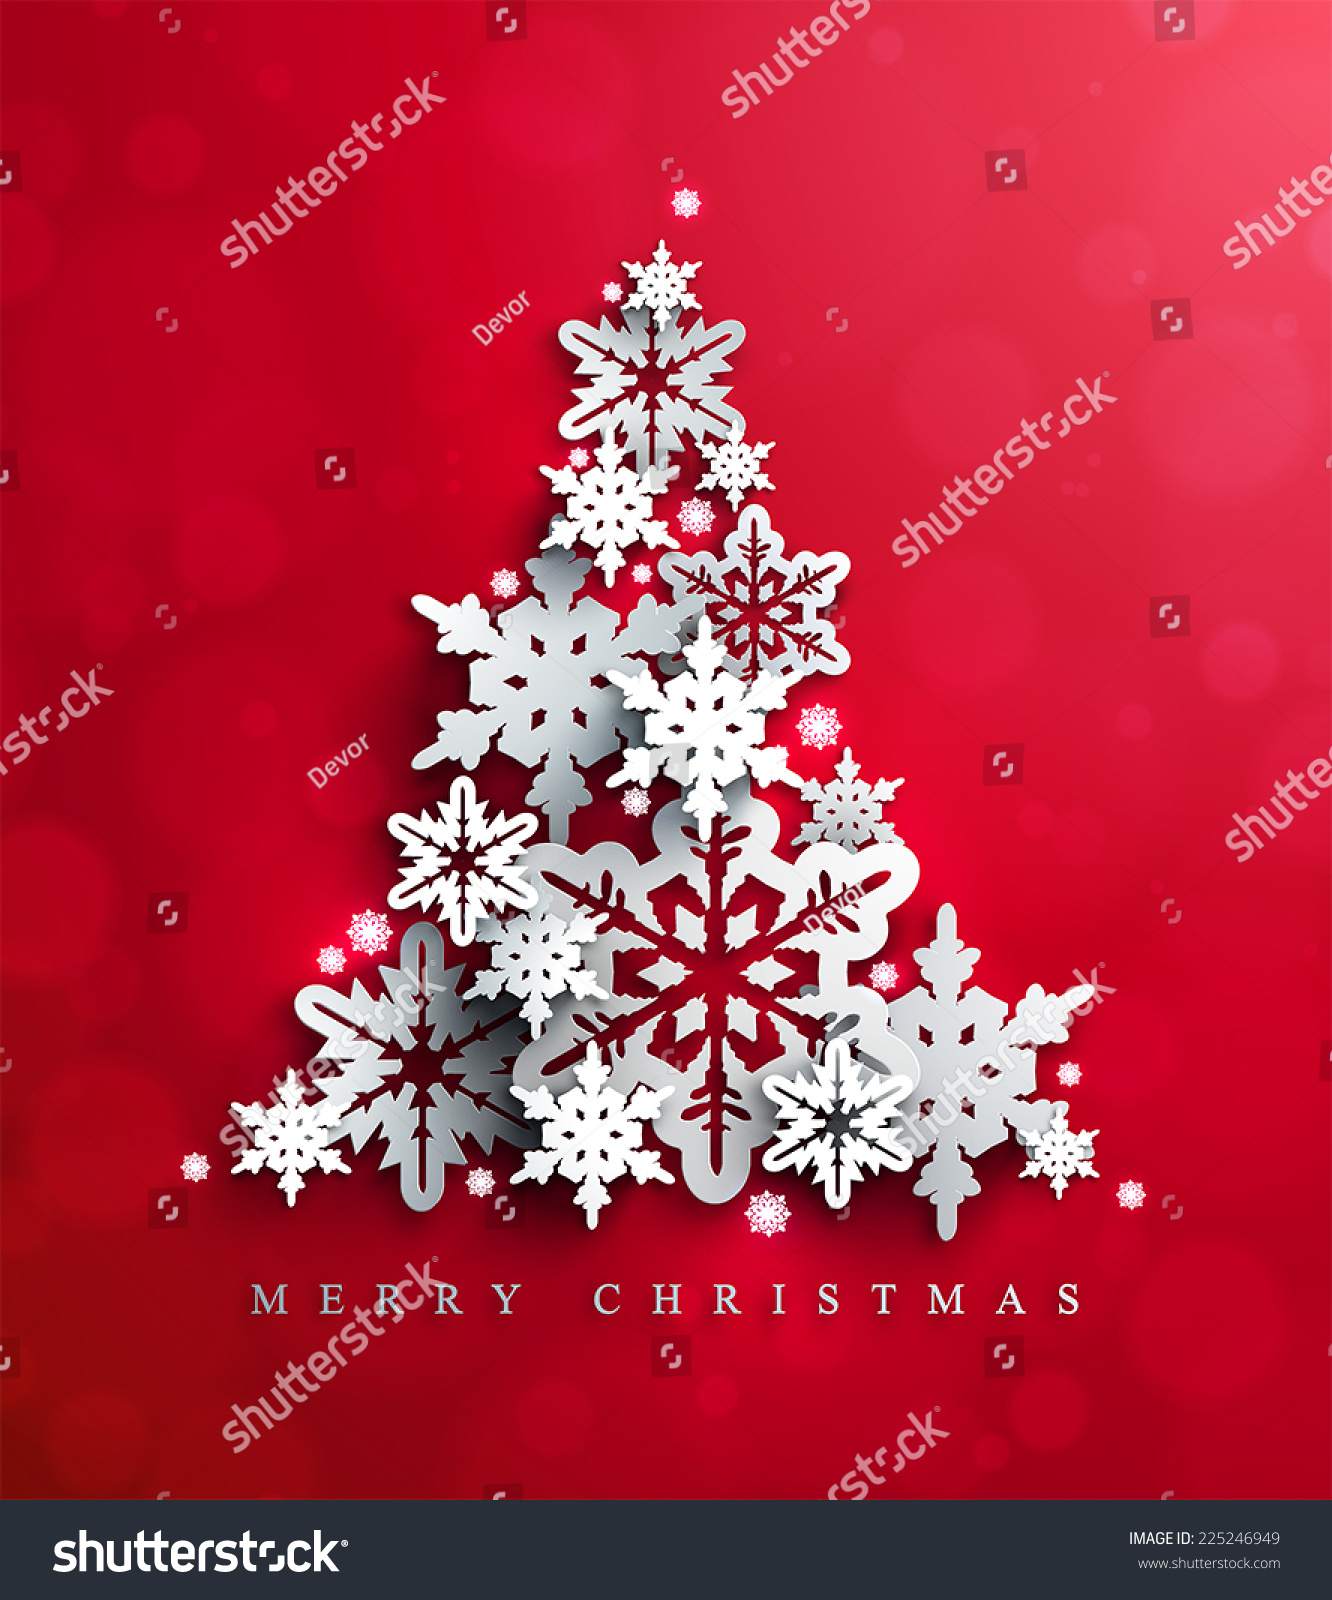 Christmas New Years Red Background Christmas Stock Vector 225246949